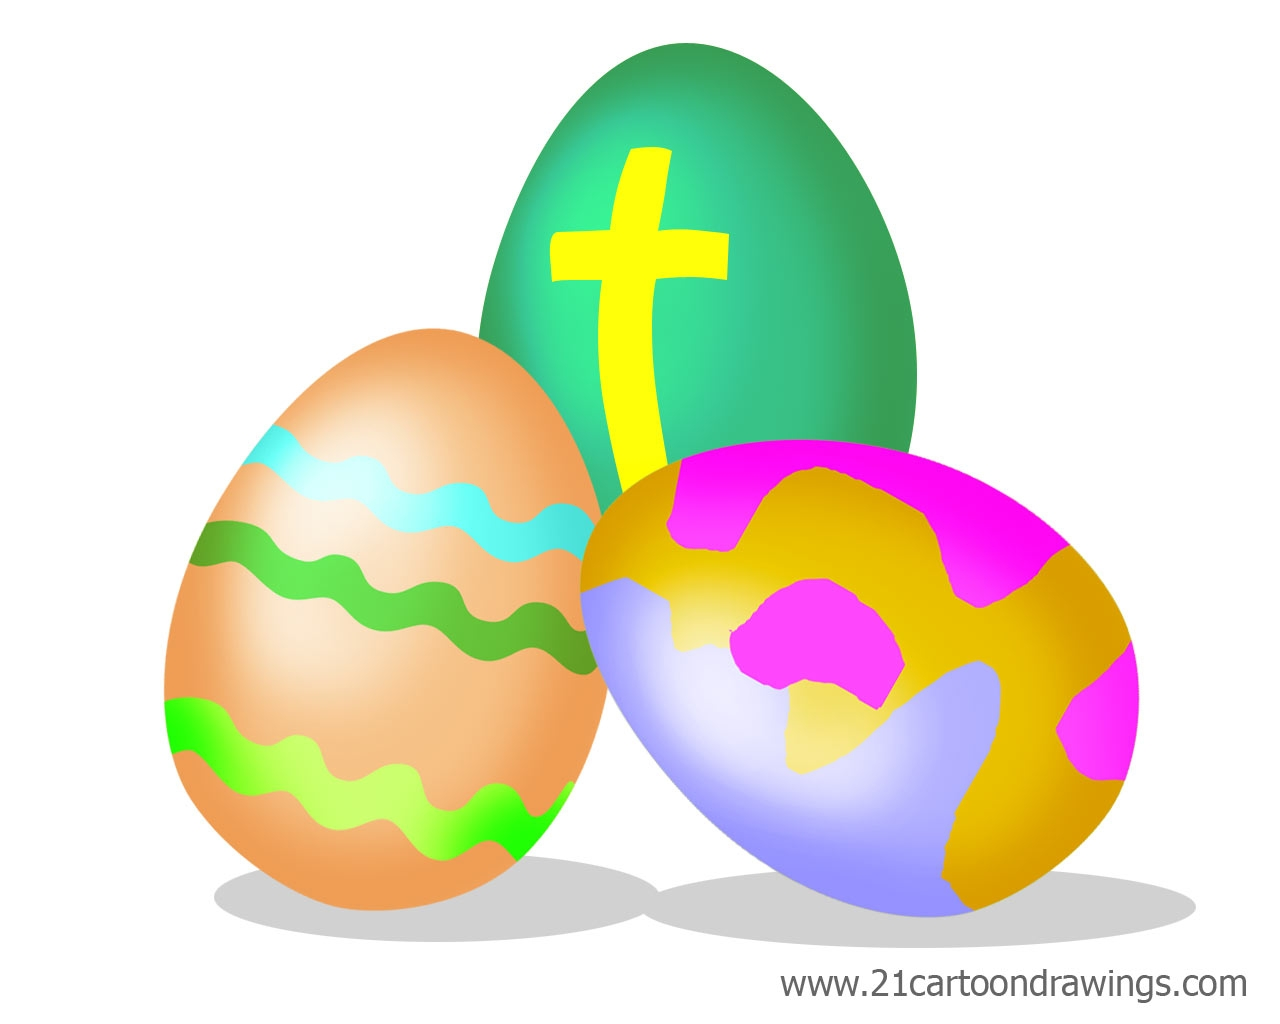 1280x1024 New Easter Clipart Free Design